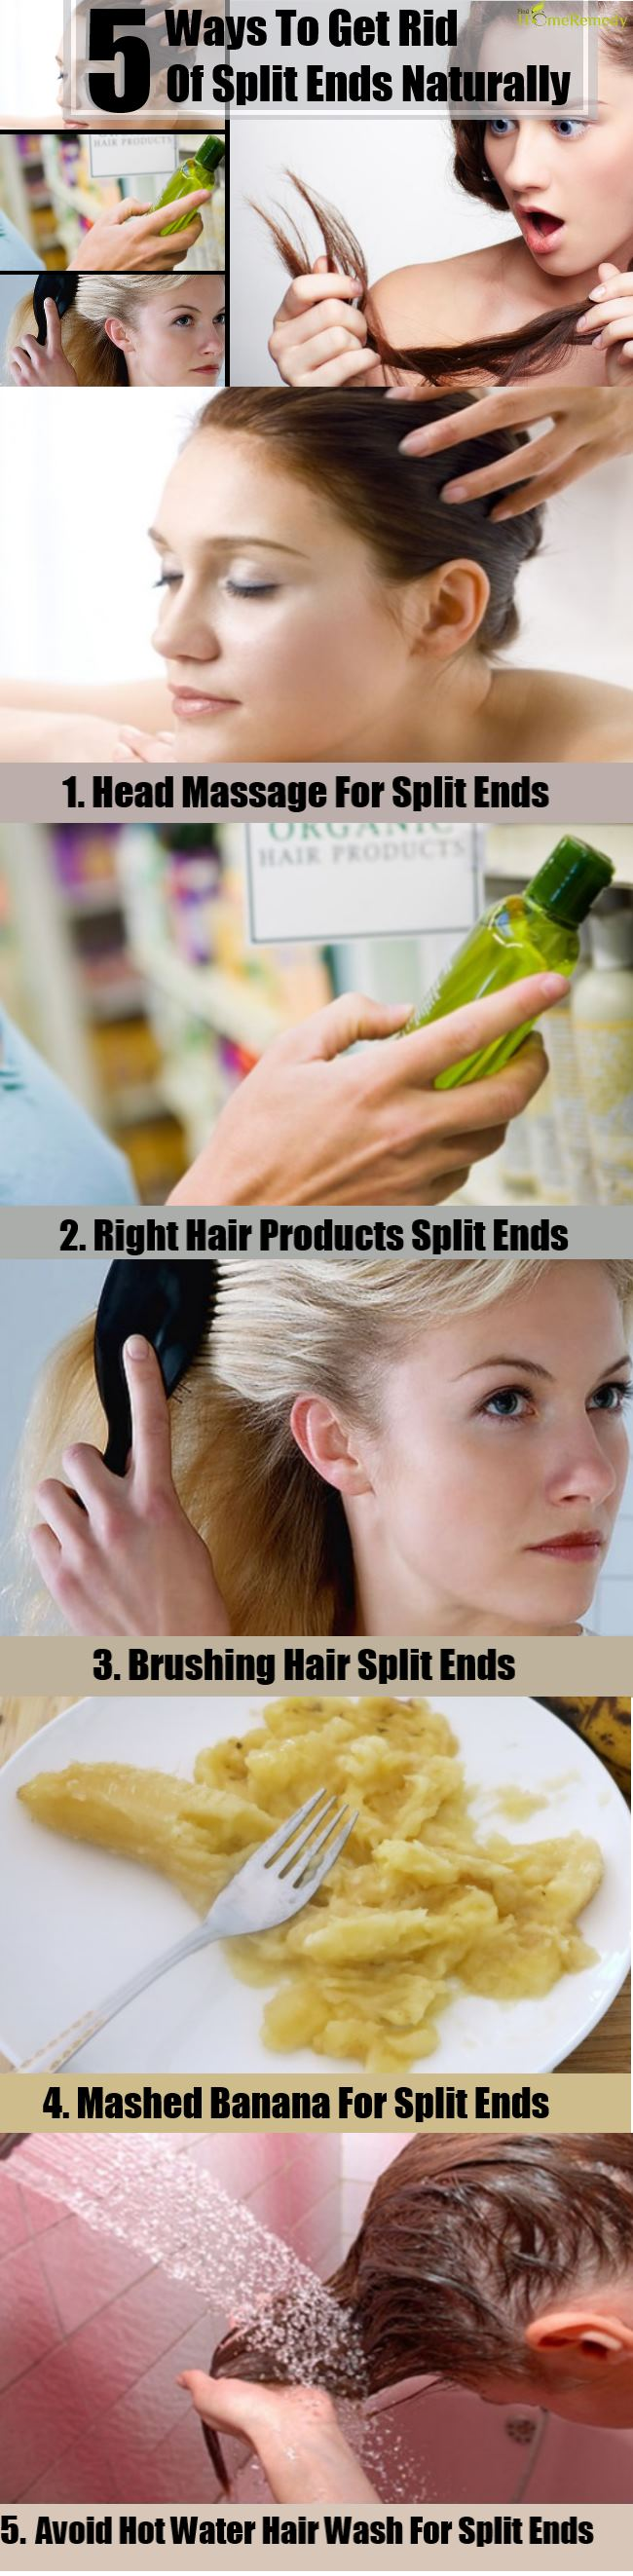 5 Ways To Get Rid Of Split Ends Naturally